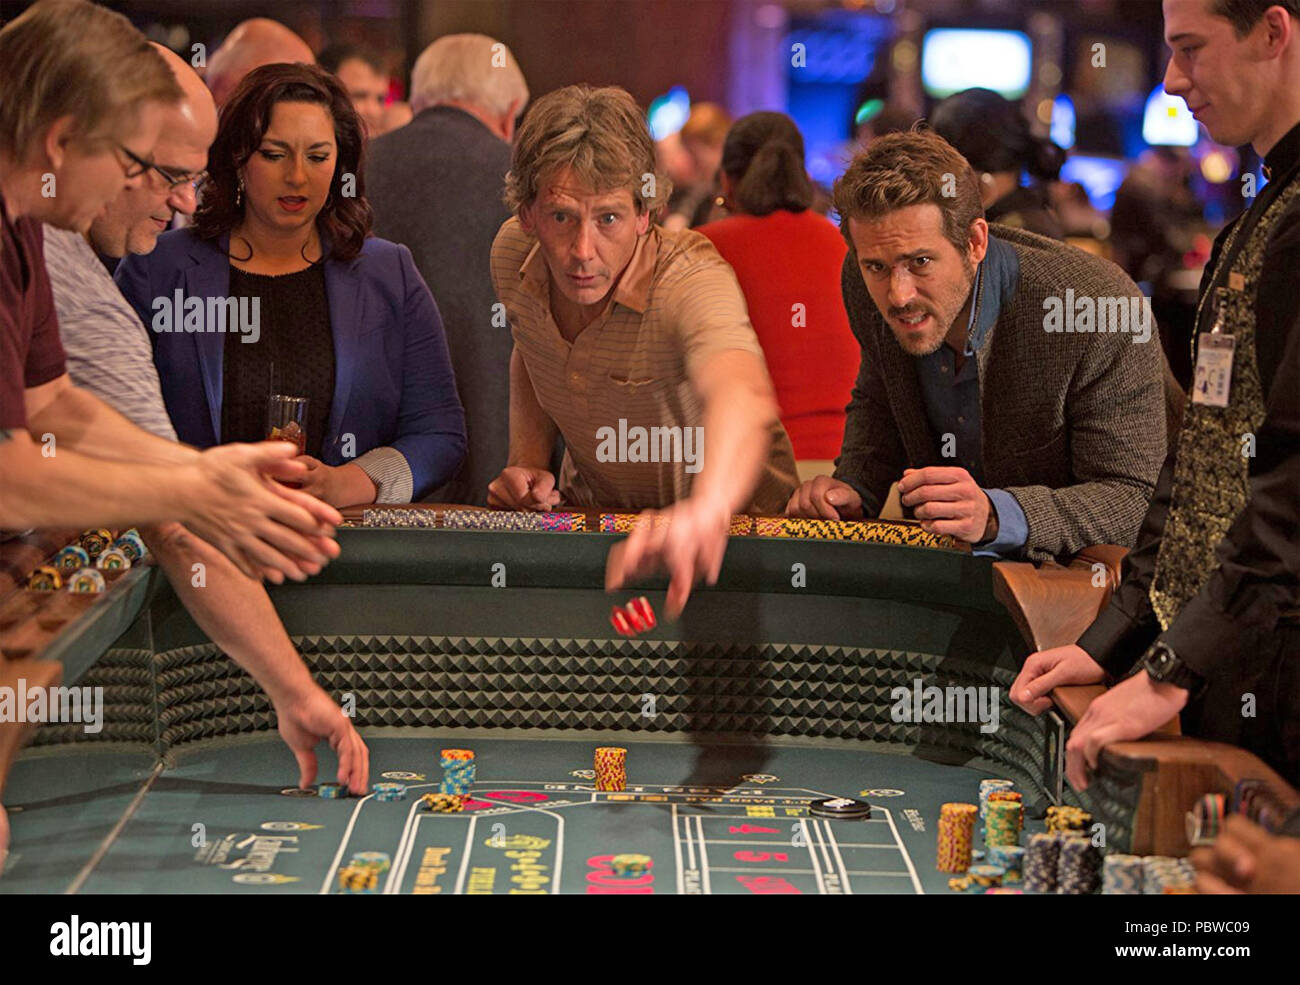 MISSISSIPPI GRIND 2015 Sycamore Pictures film with Ben Mendelsohn at left and Ryan Reynolds - Stock Image